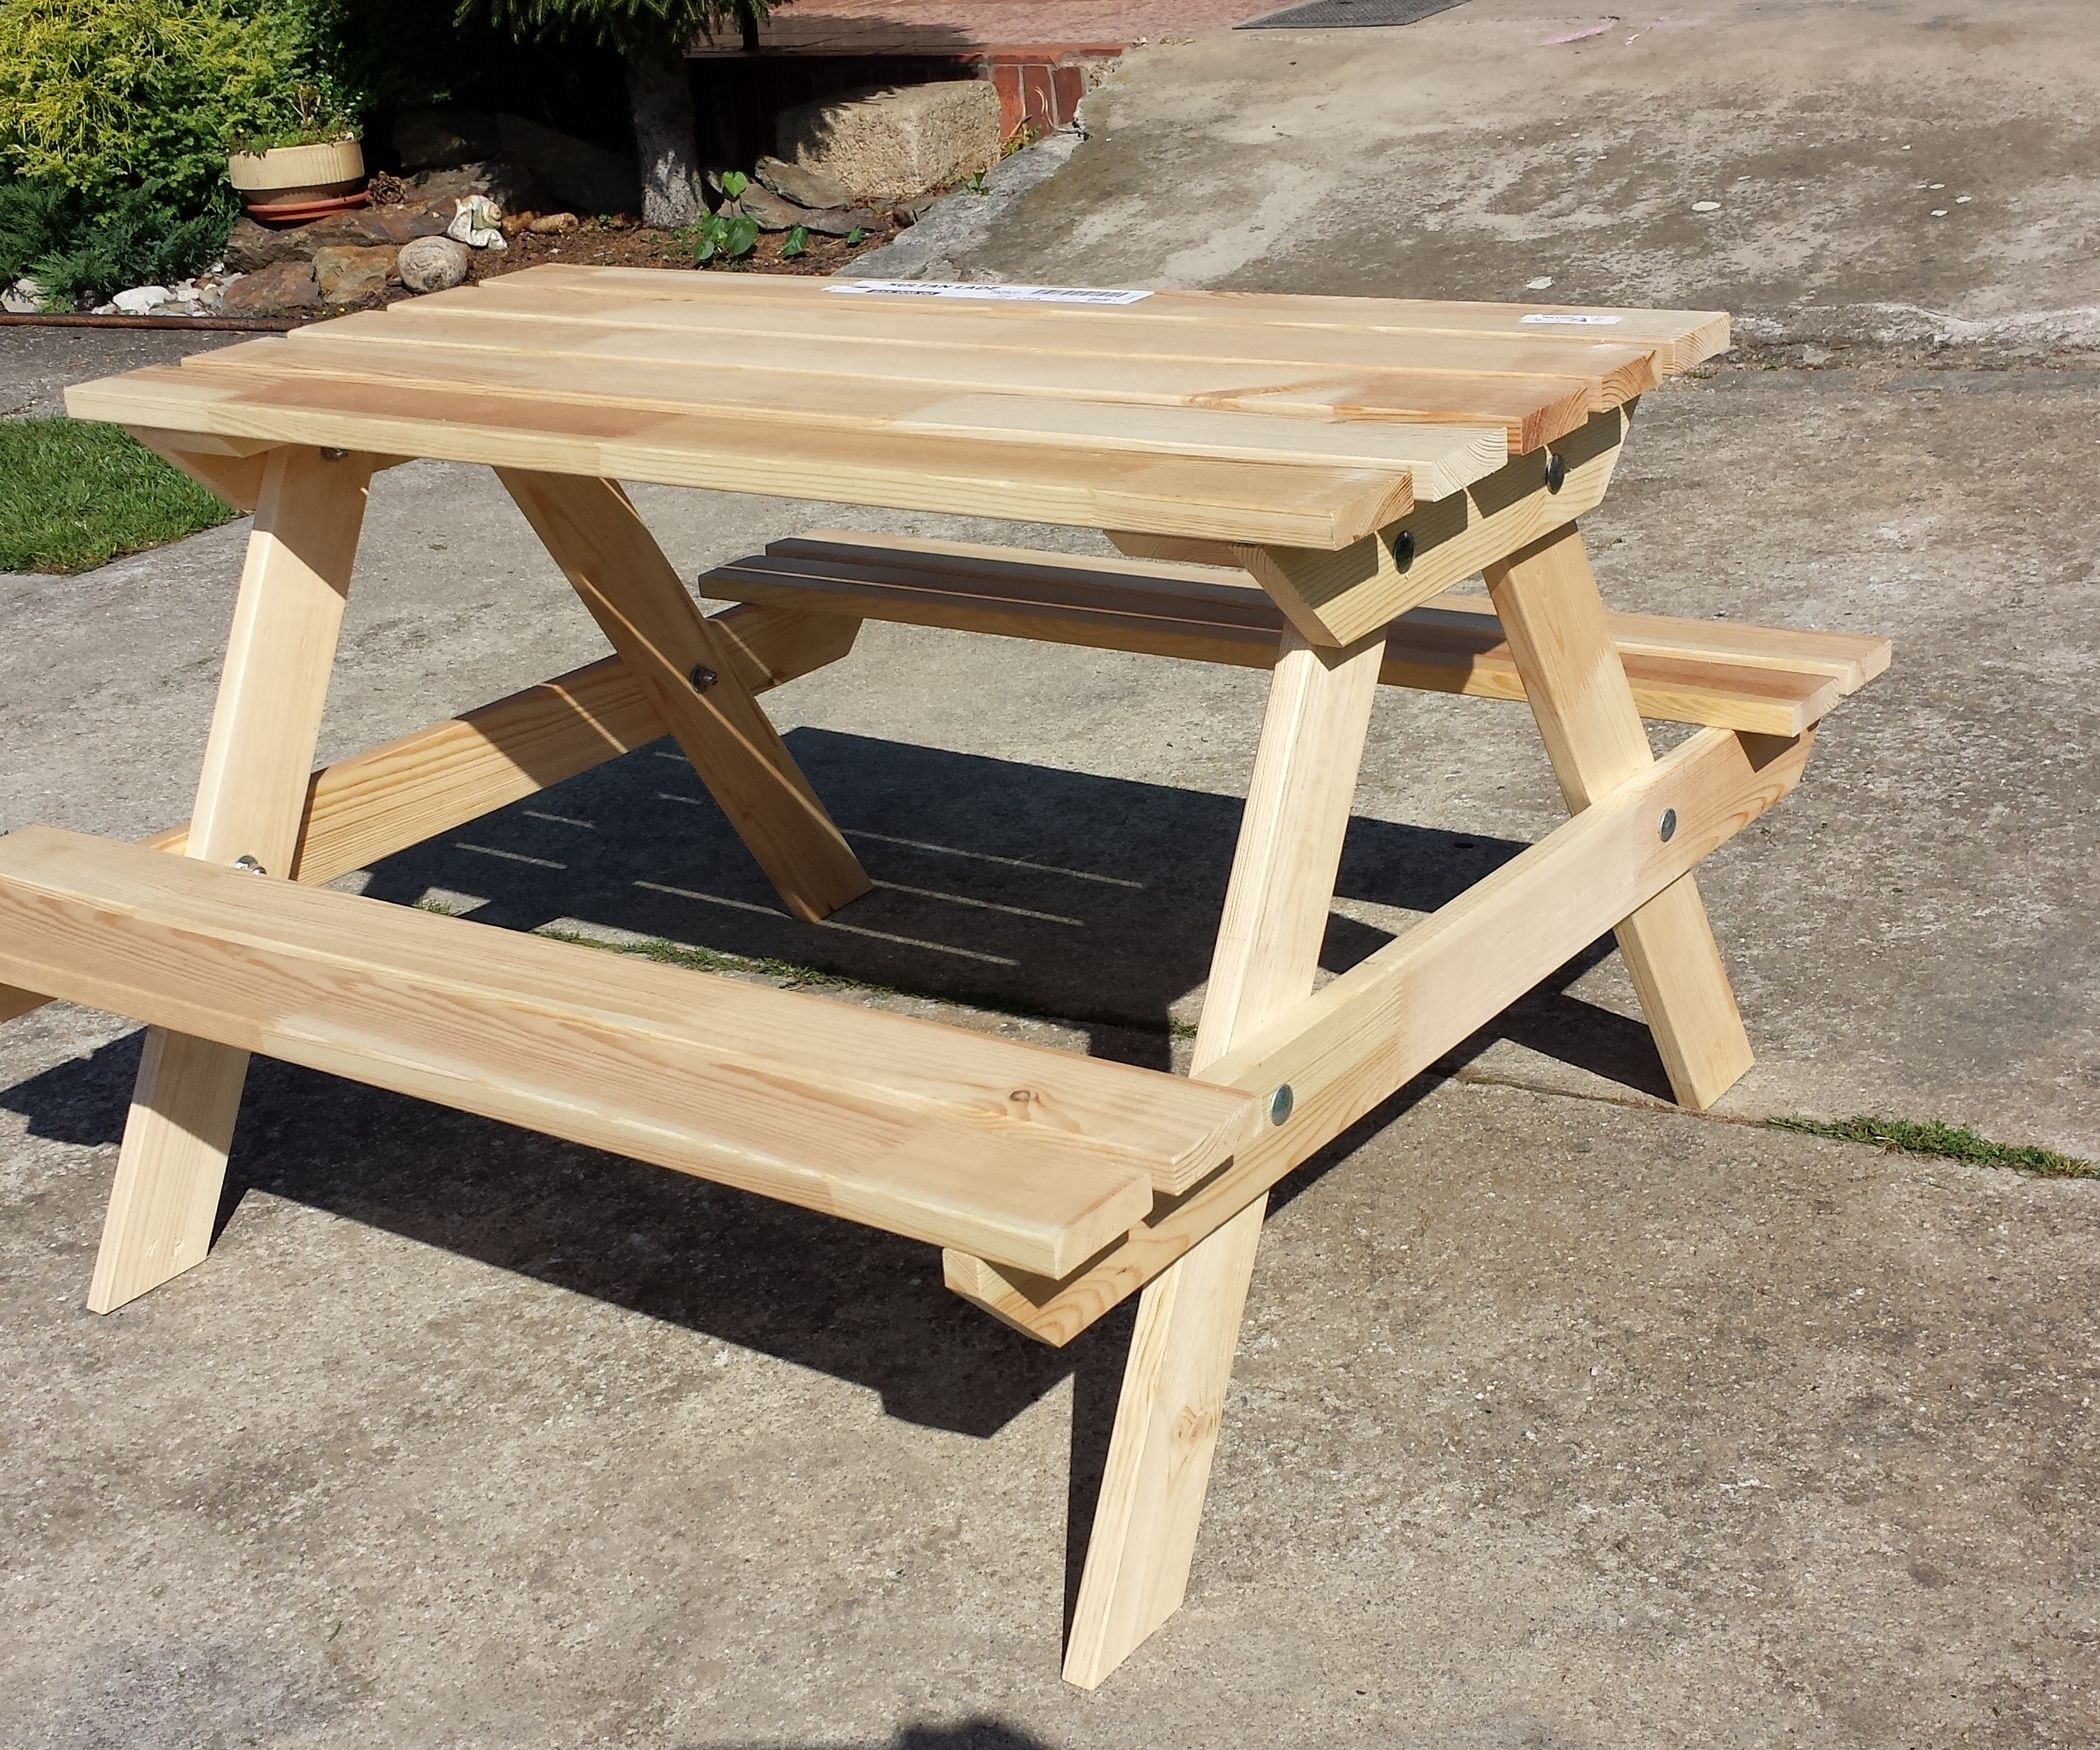 Sultan Lade Kids Camp Table Diy Crafts Table Camping